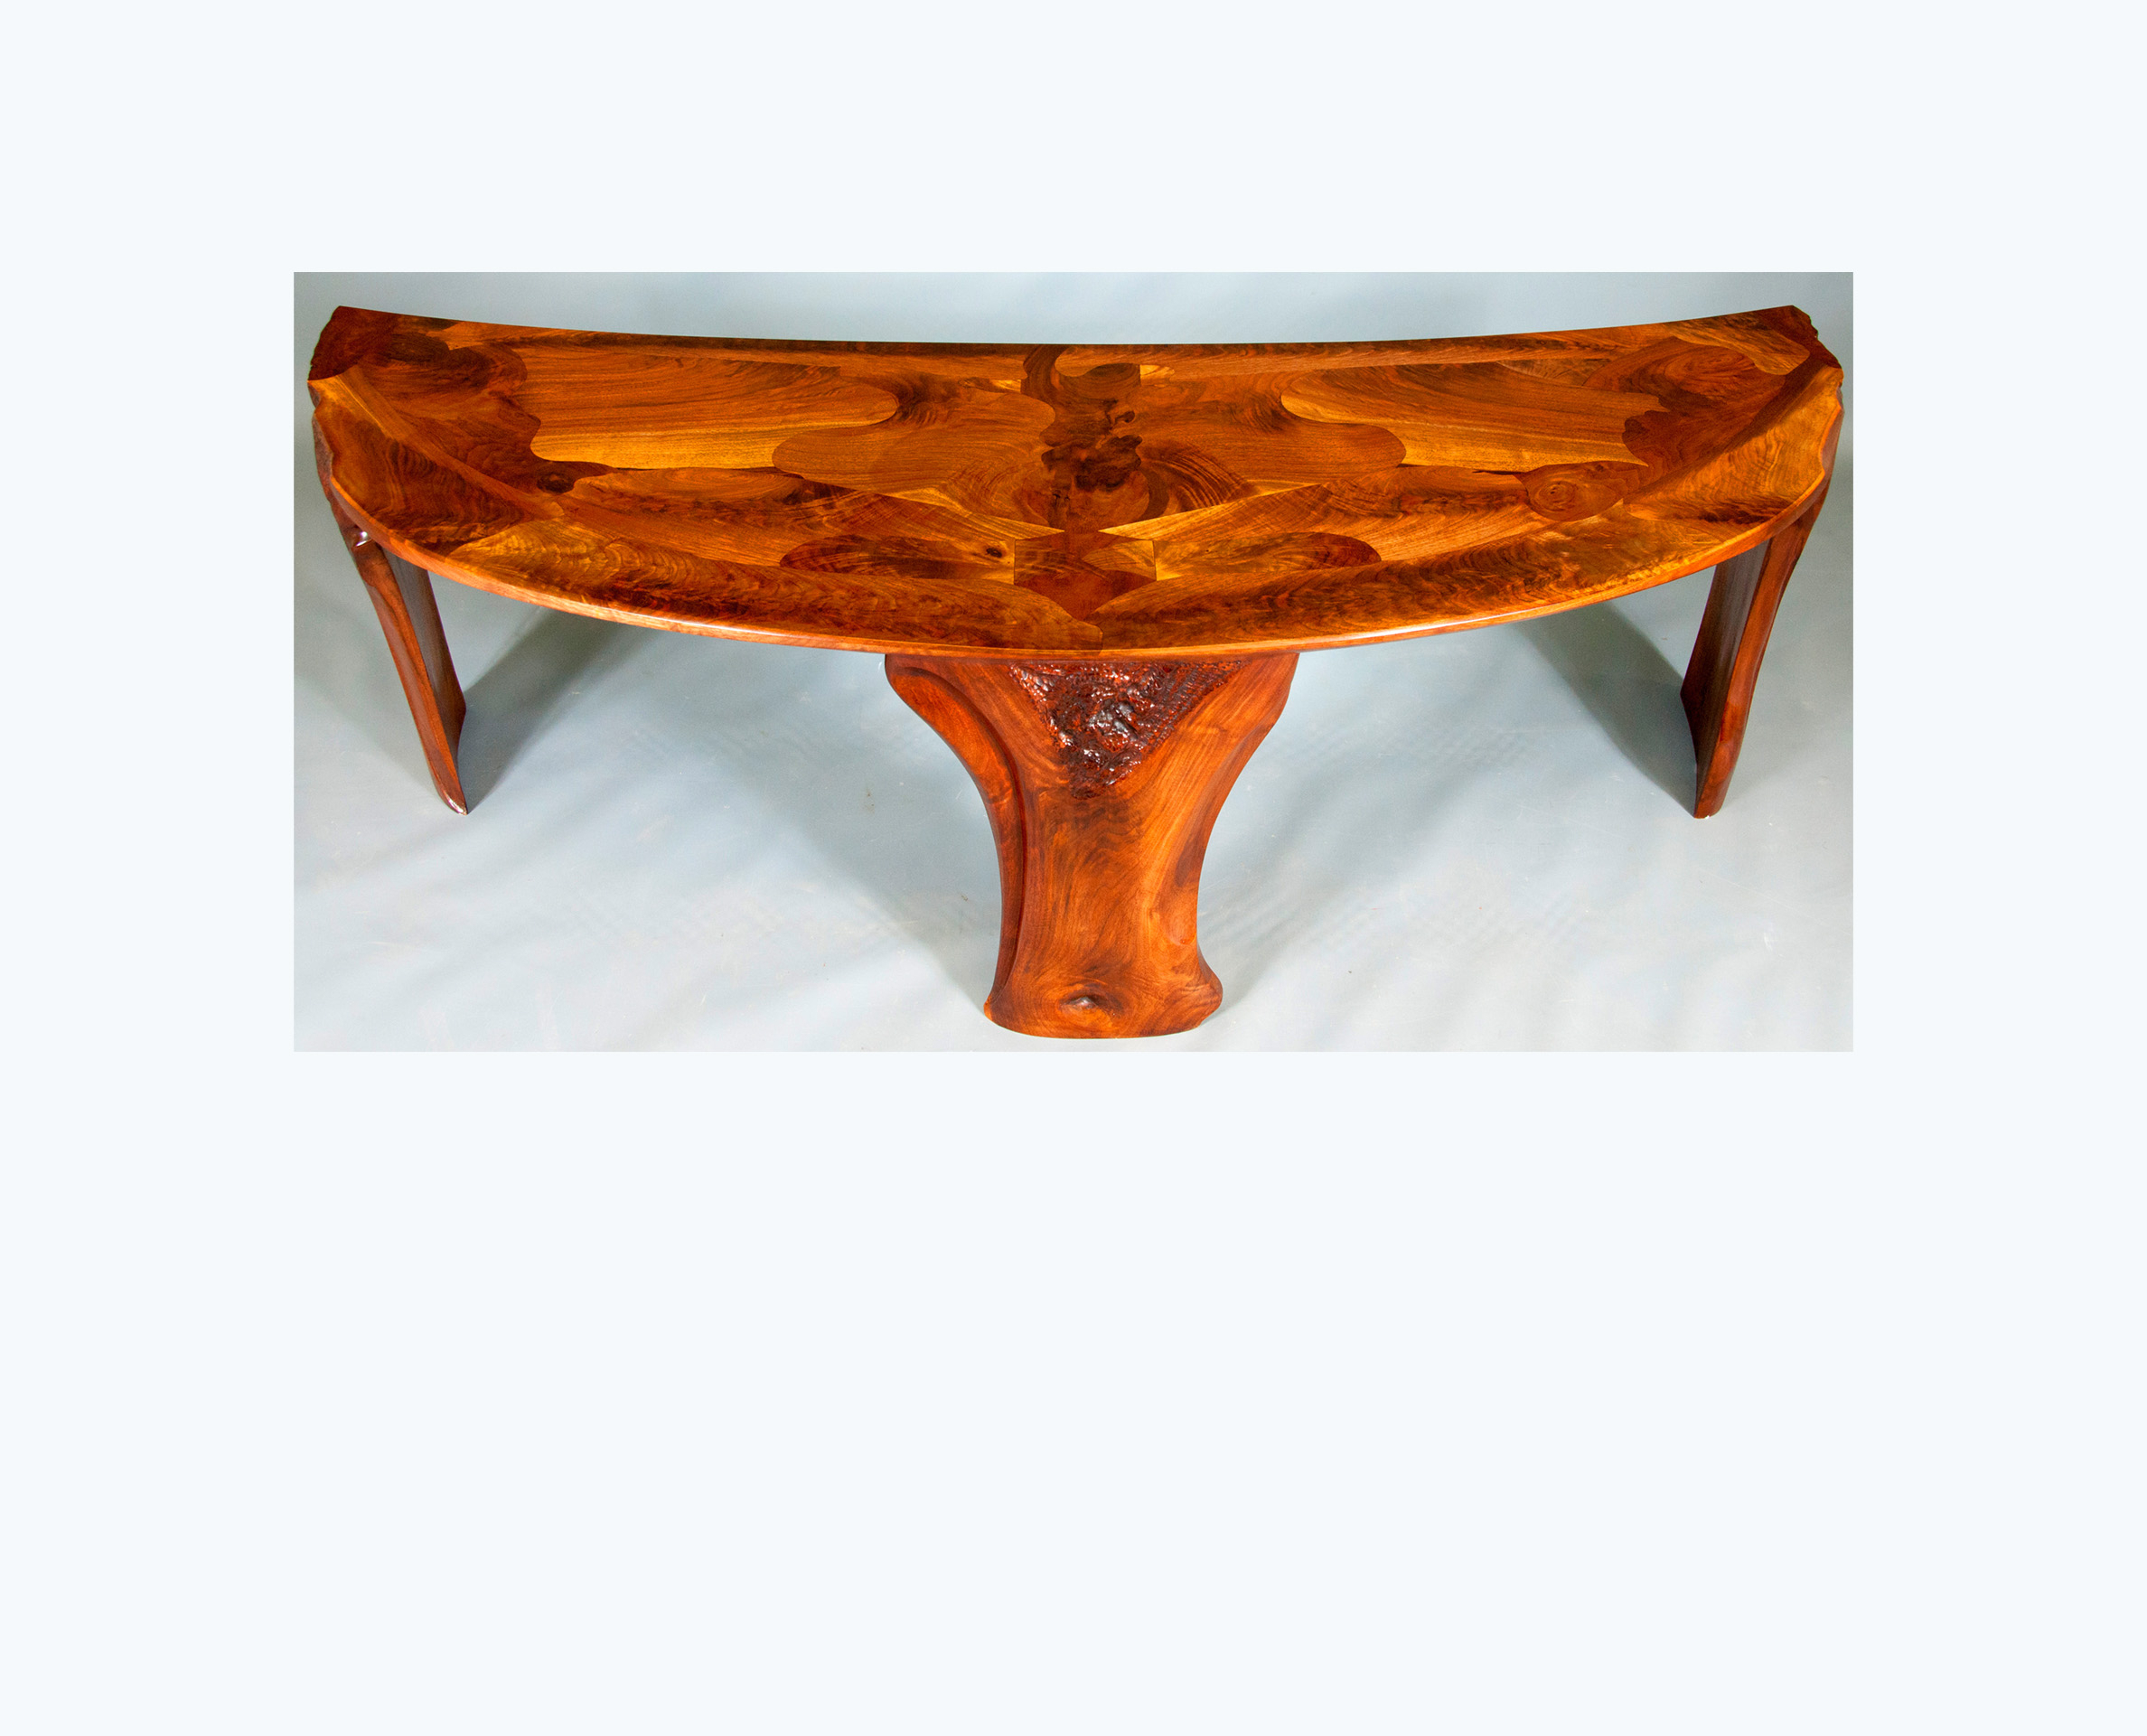 The Furniture Society Pertaining To Recent Expressionist Coffee Tables (View 20 of 20)